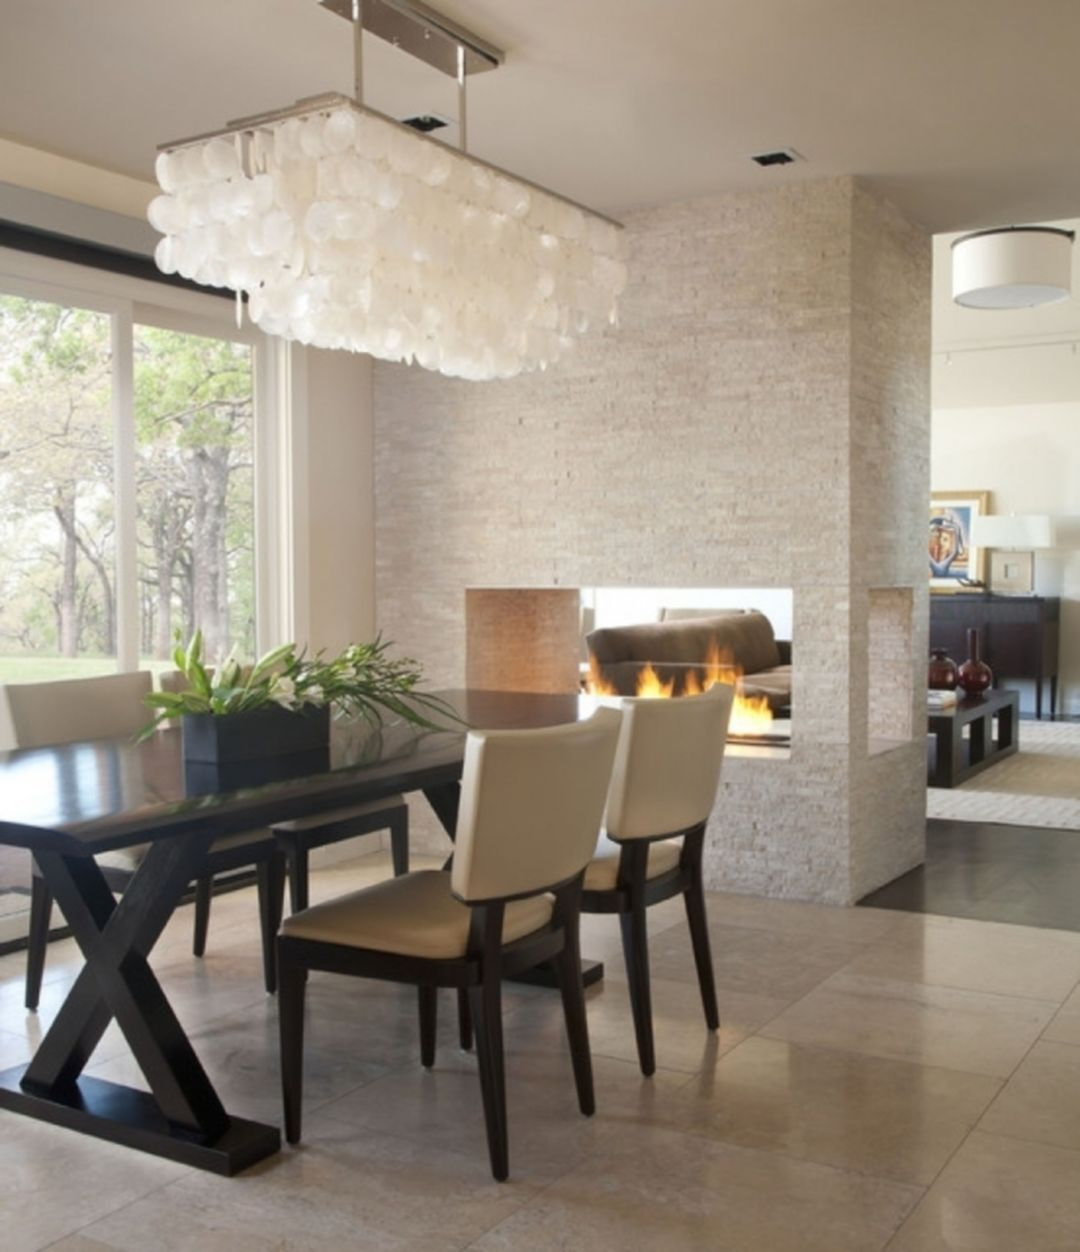 20 Stunning Cozy Dining Room Design And Decorating Ideas Dining